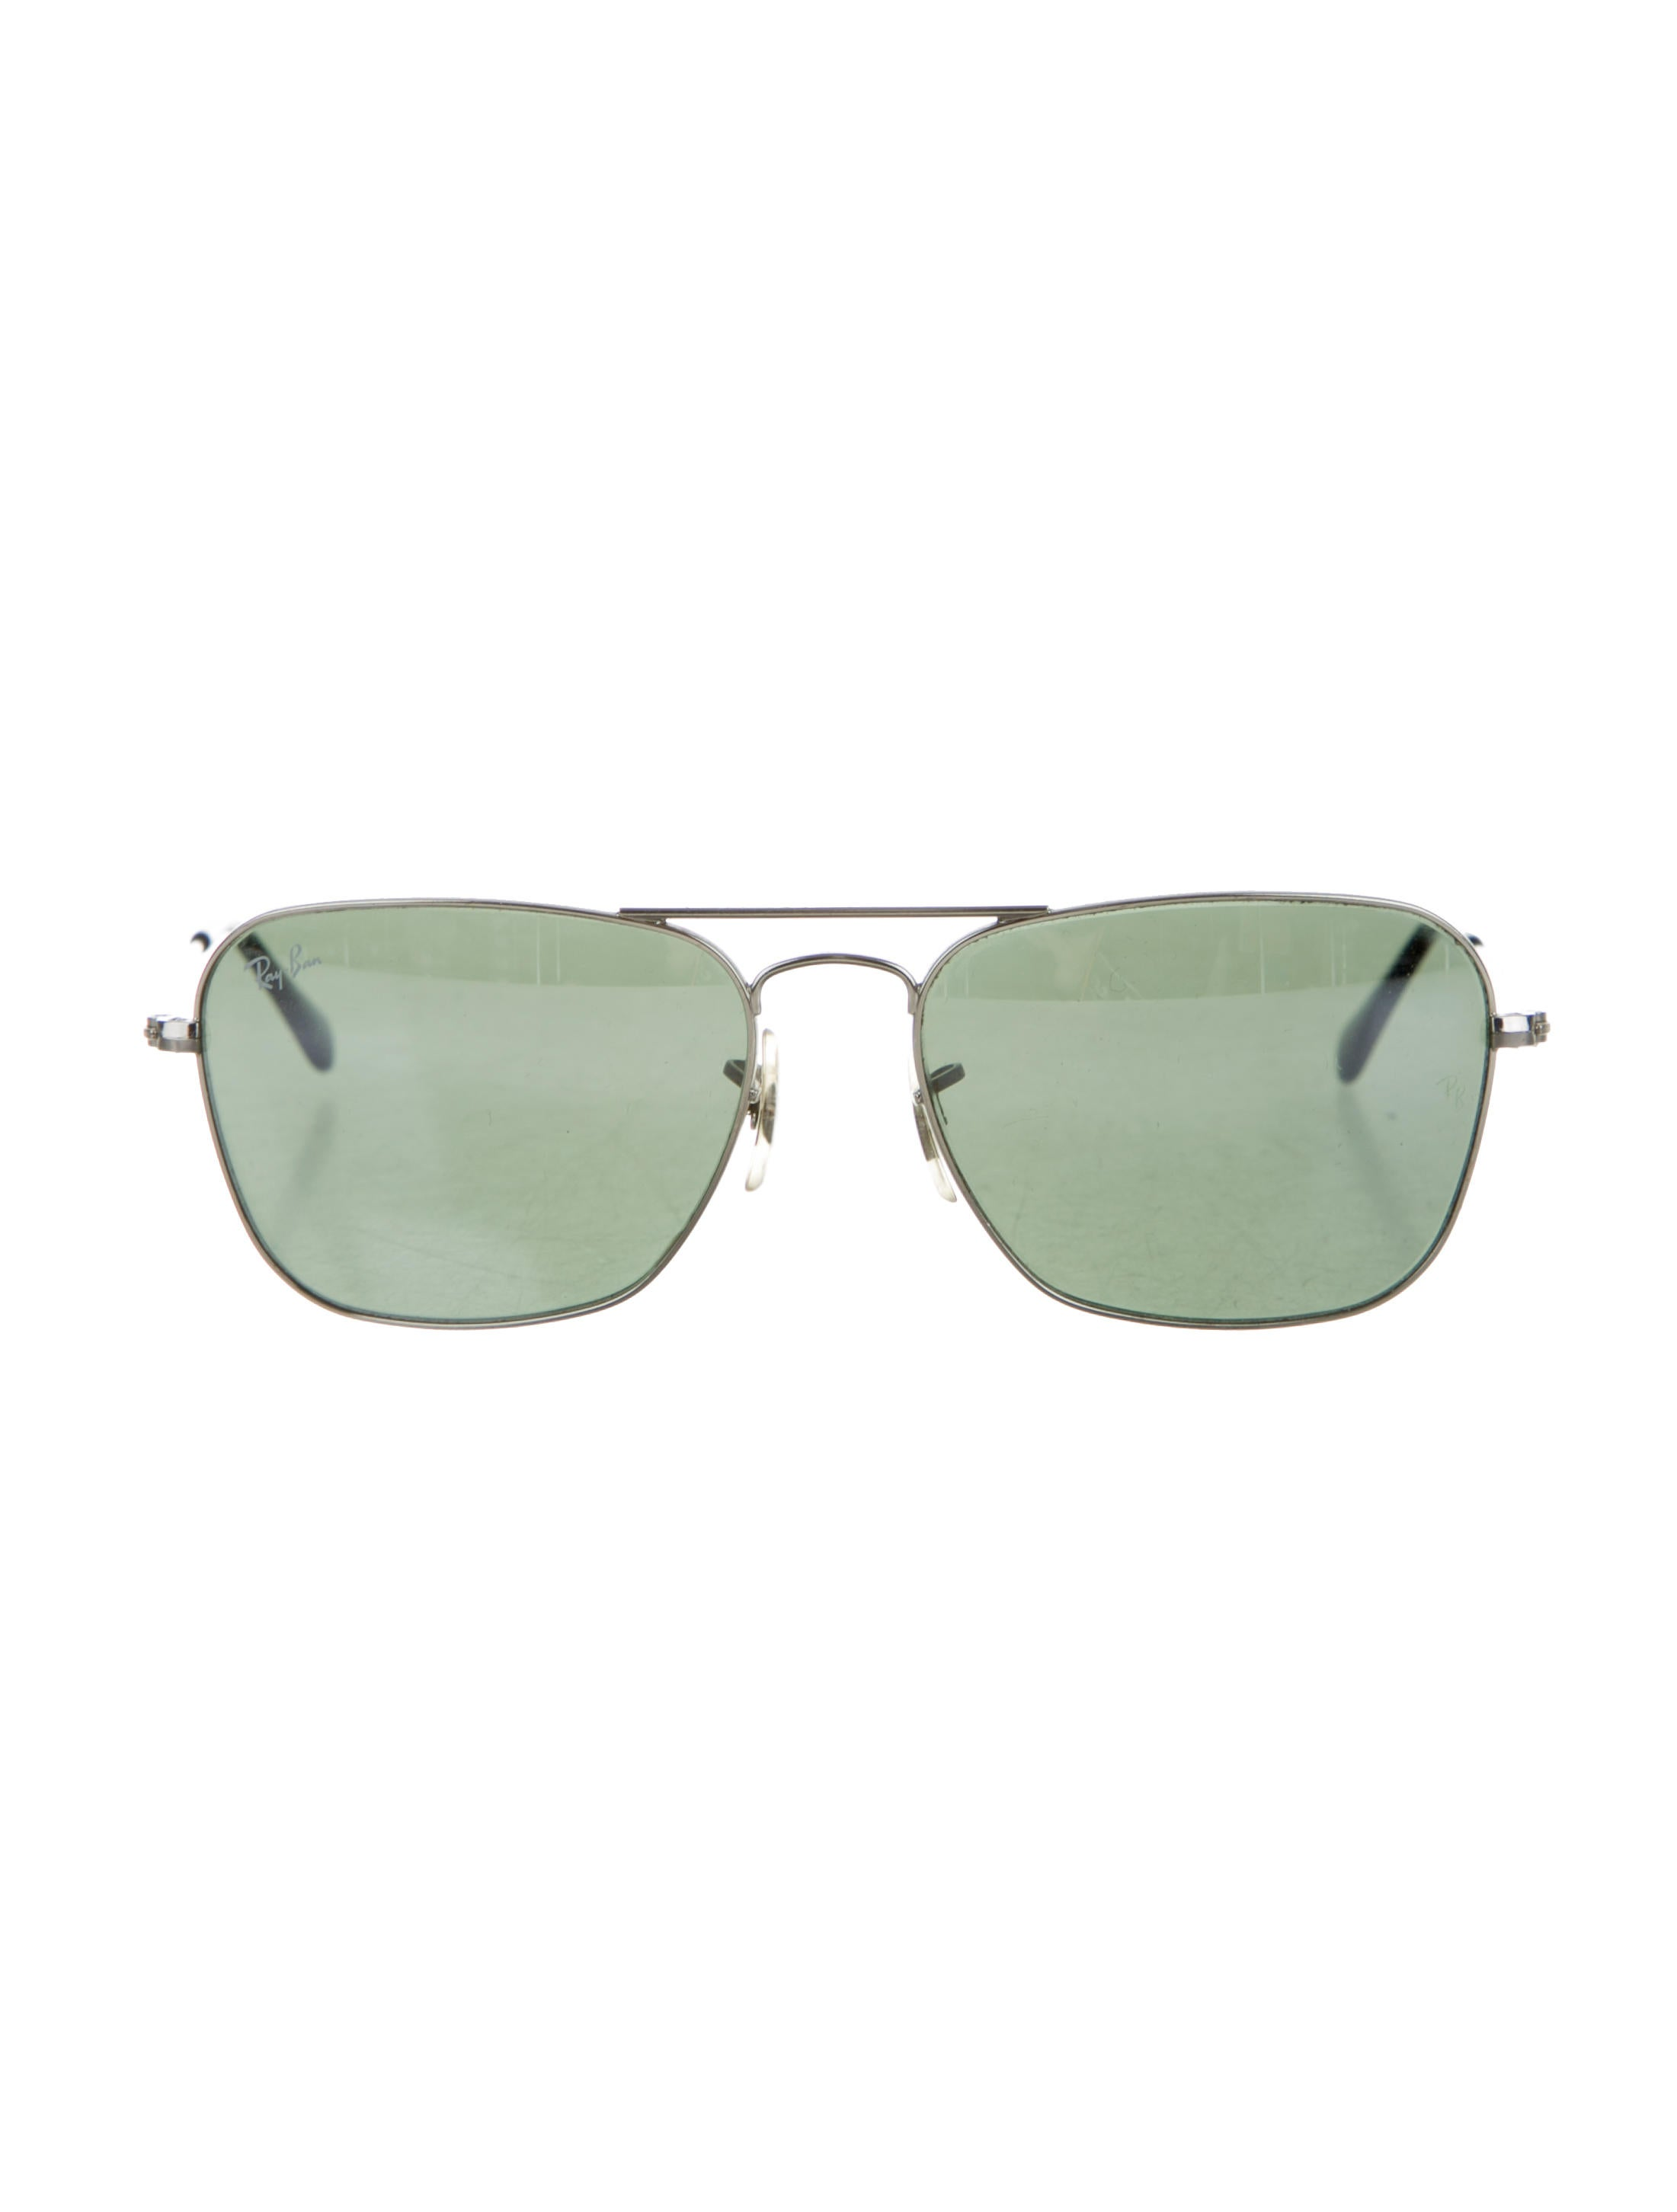 For sale is a brand new pair of sunglasses aviator style handmade in Italy by Oliver Peoples, These are unisex; they come in their original leather case, box, dust cloth and a booklet. They made out of a very light silver color metal with gray mirror lenses.